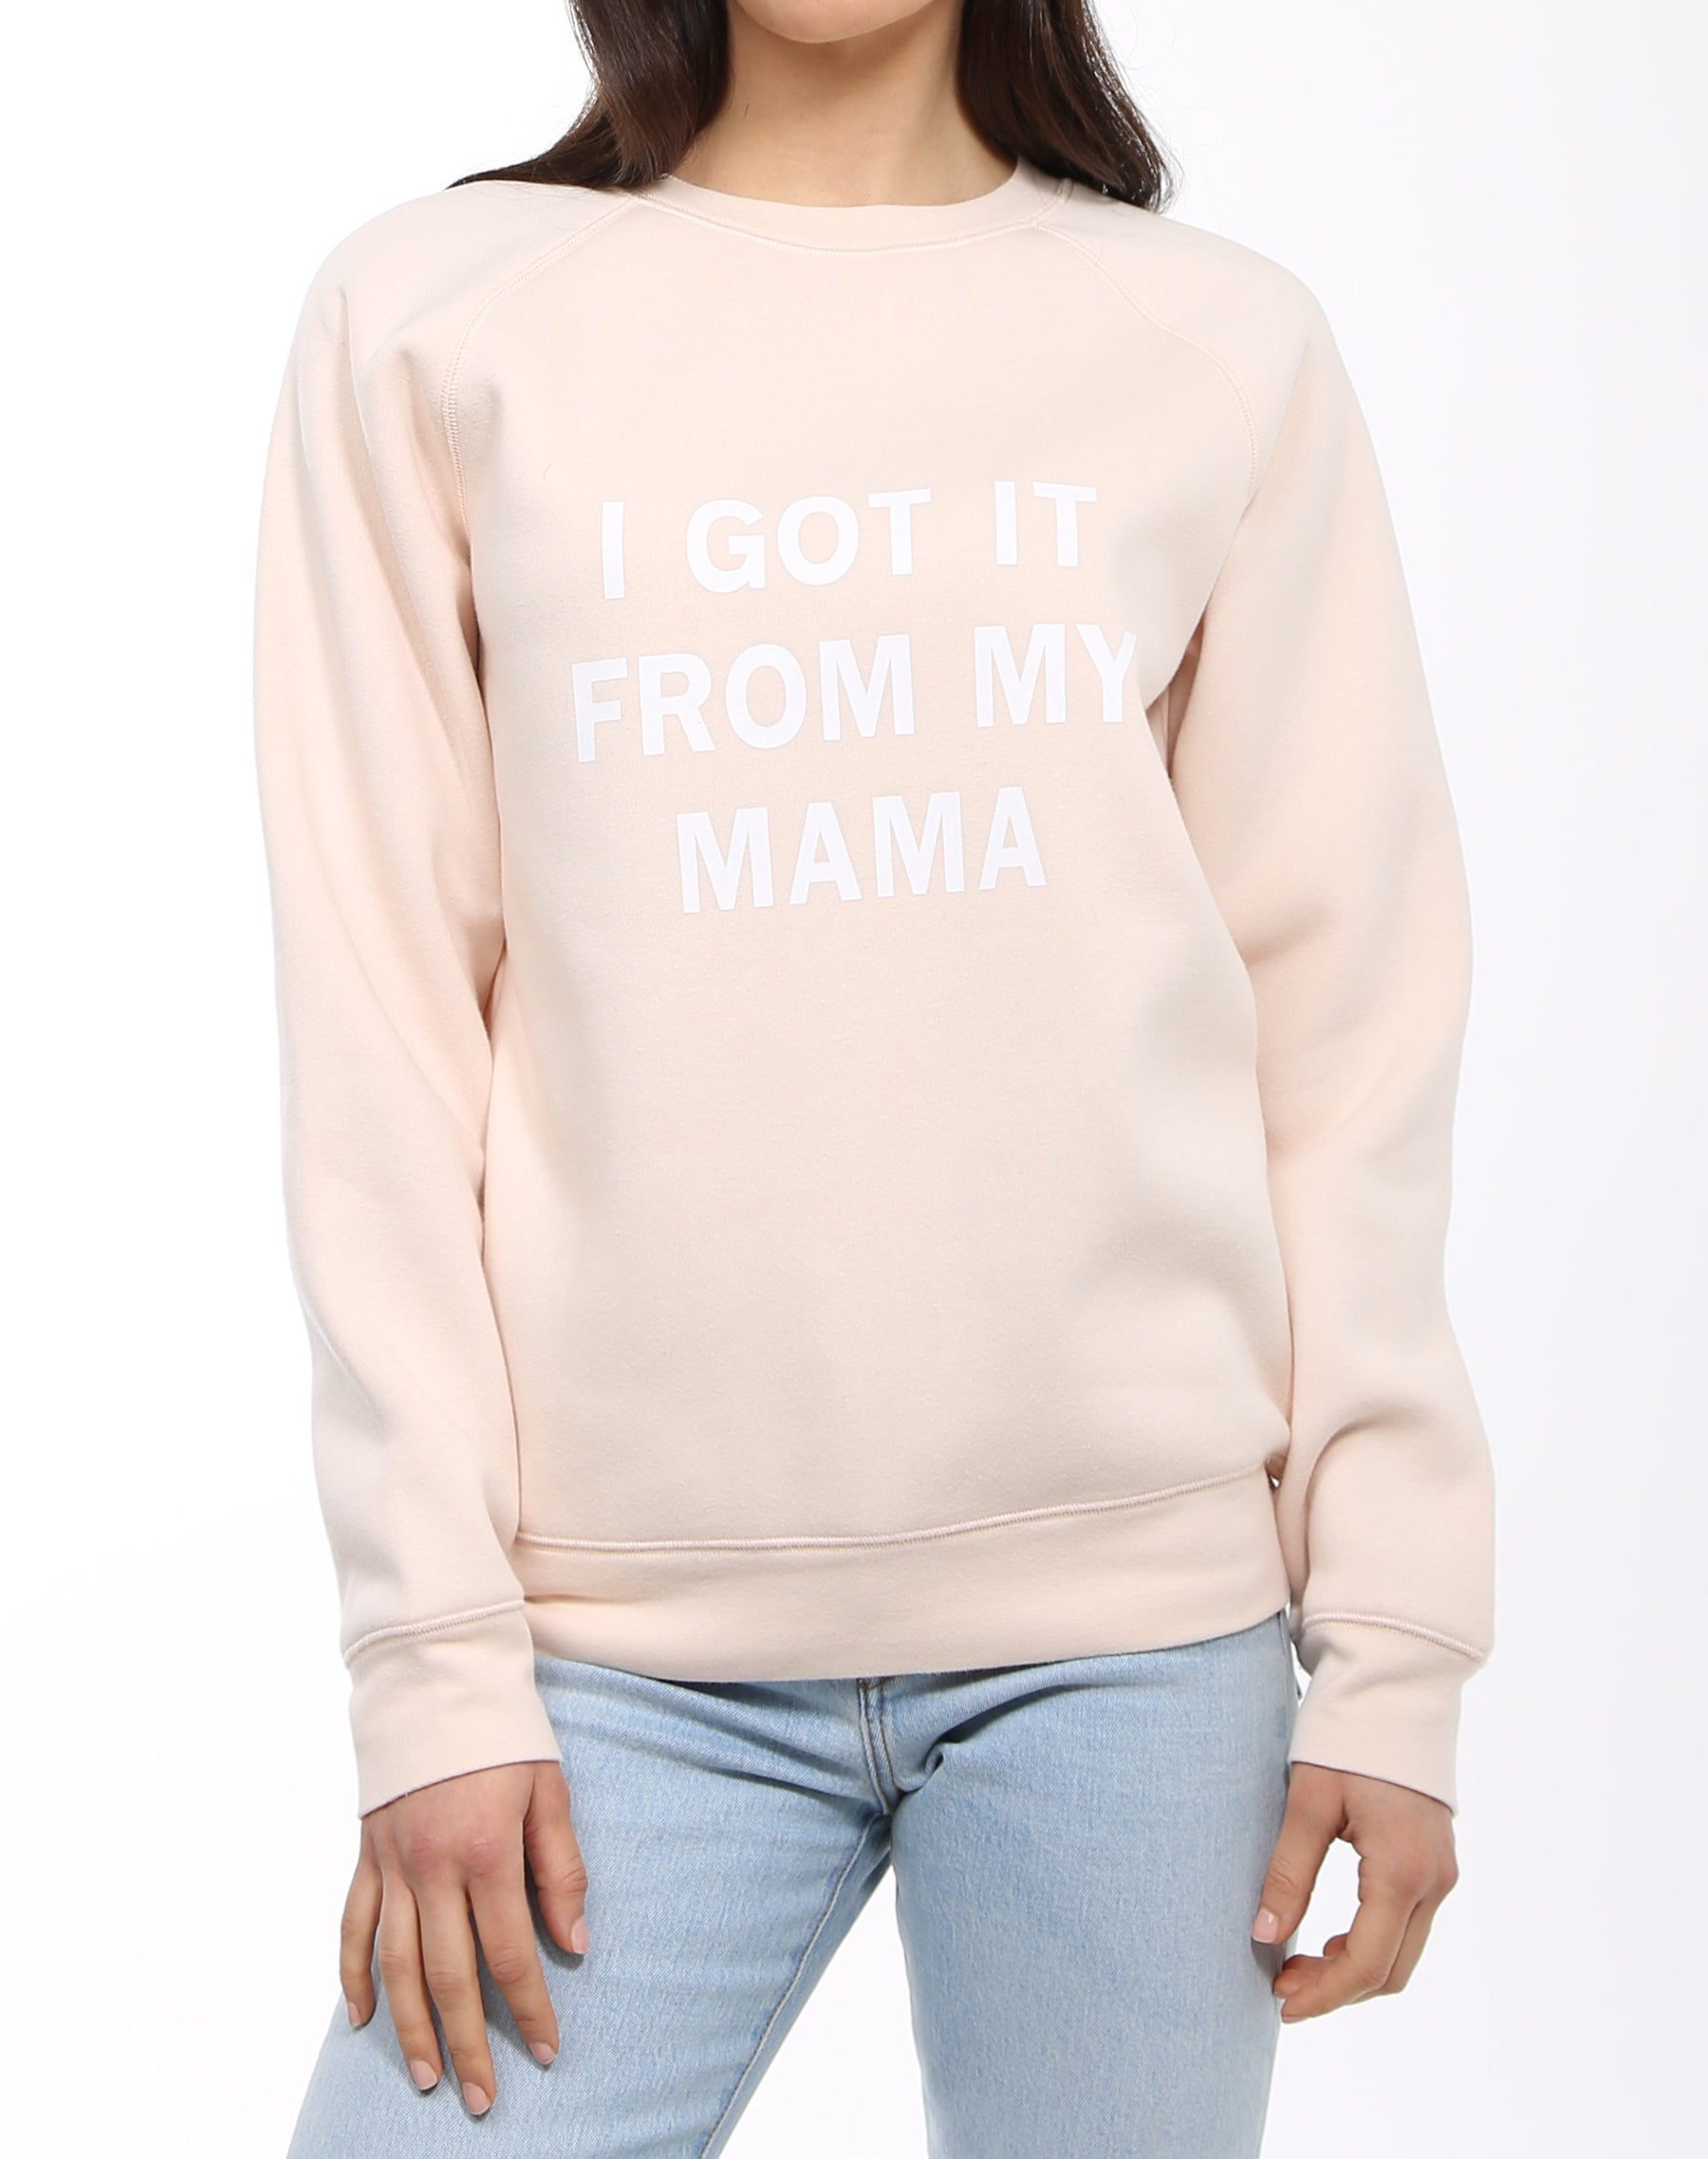 Photo 3 of the I Got it From My Mama classic crew neck sweatshirt in peach crush by Brunette the Label.